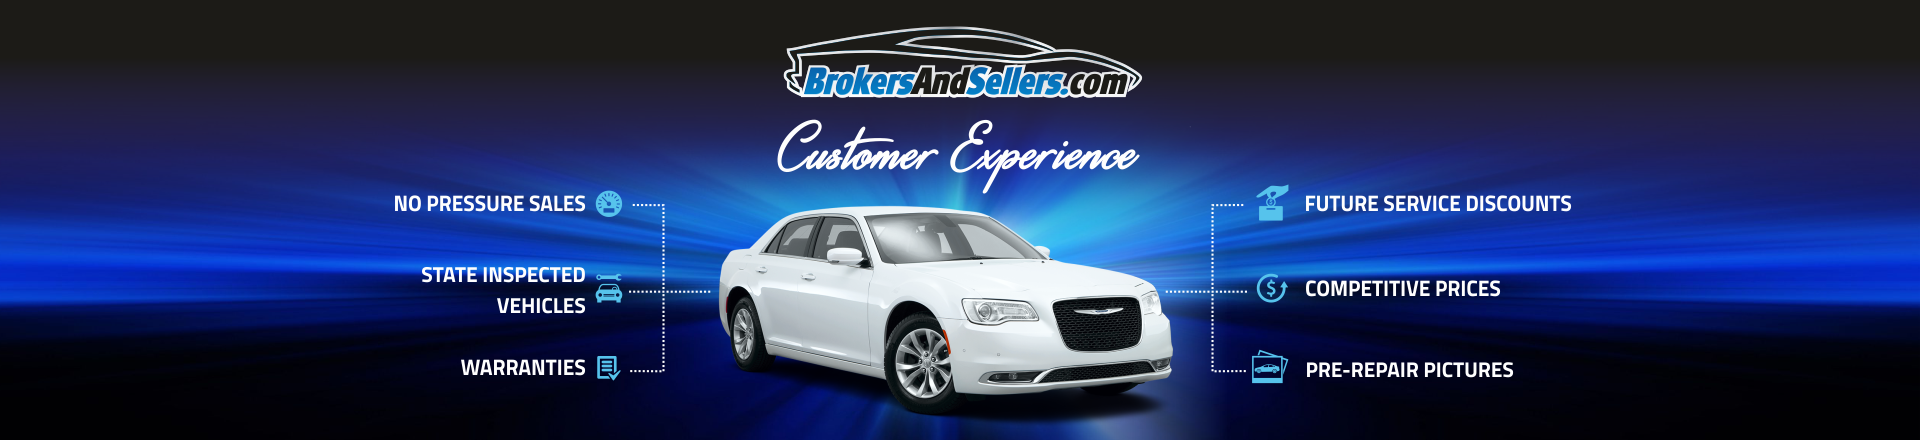 Our Customer Experience, we offer no pressure sales, state inspected vehicles, warranties, future service discounts, competitive prices and pre-repair pictures